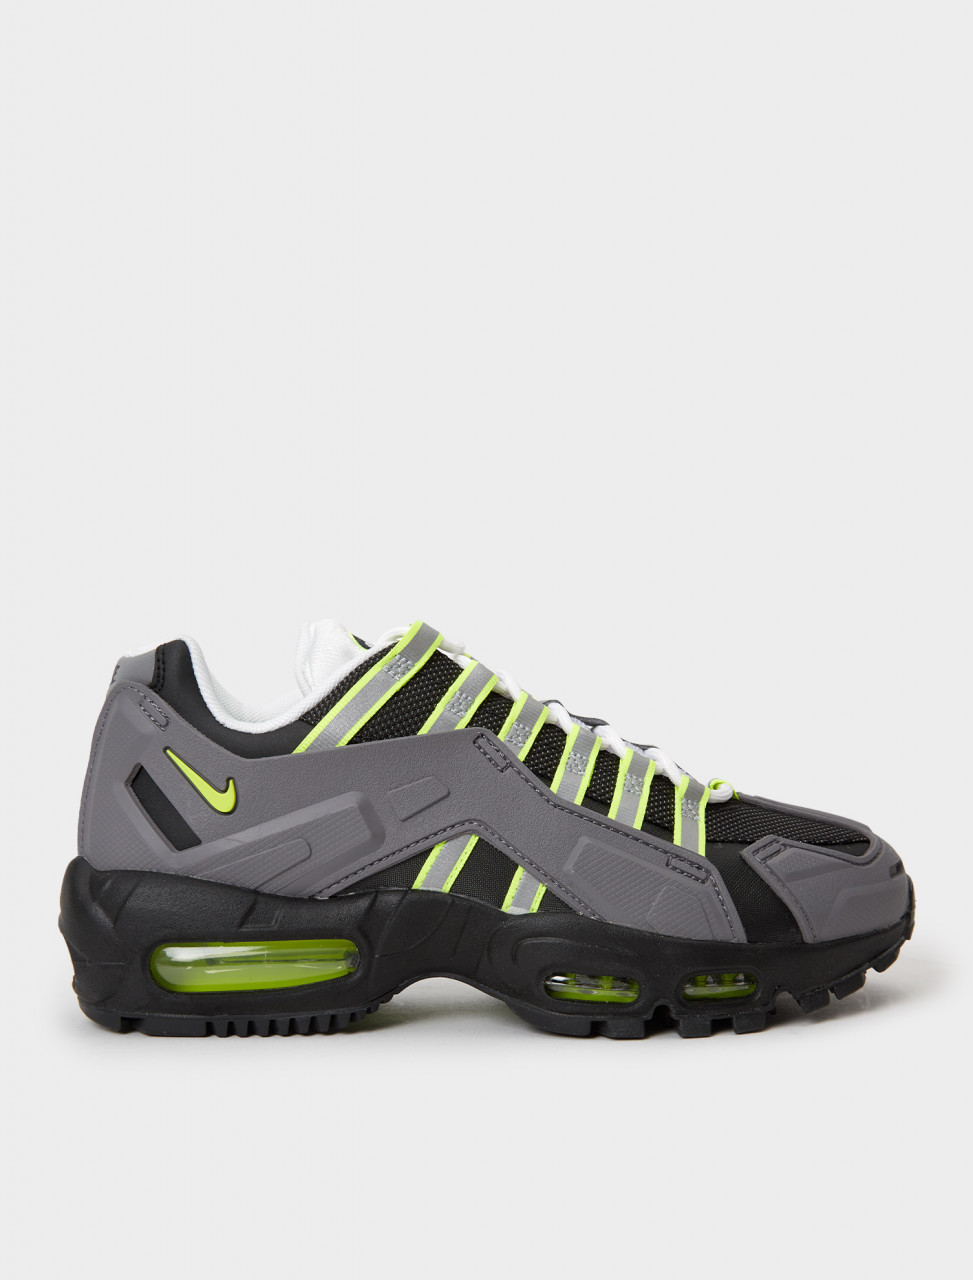 CZ3591-002 NIKE NDSTRKT AM 95 BLACK NEON YELLOW MEDIUM GREY